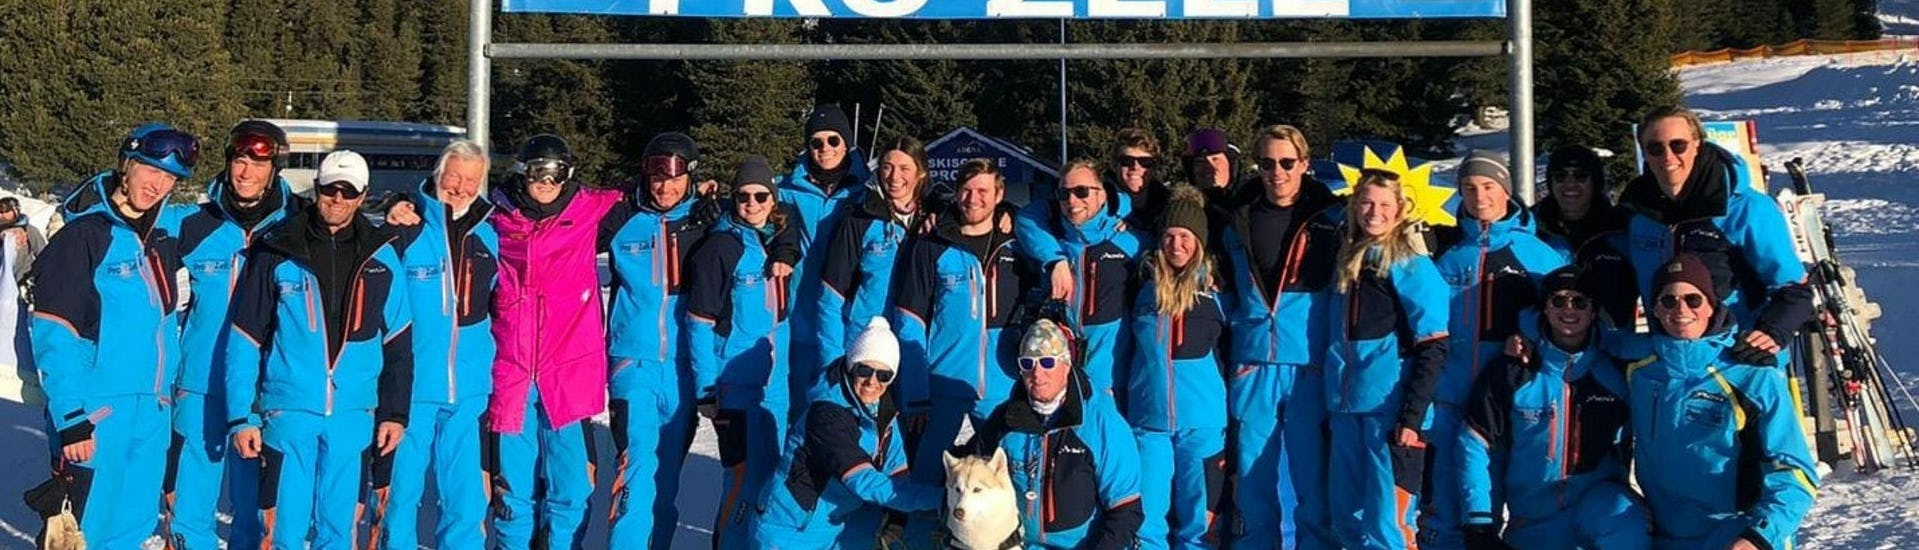 The ski instructors from the ski school Skischule Pro Zell in Zell am Ziller are posing together for a group photo to promote their Ski Lessons for Adults - Beginners.